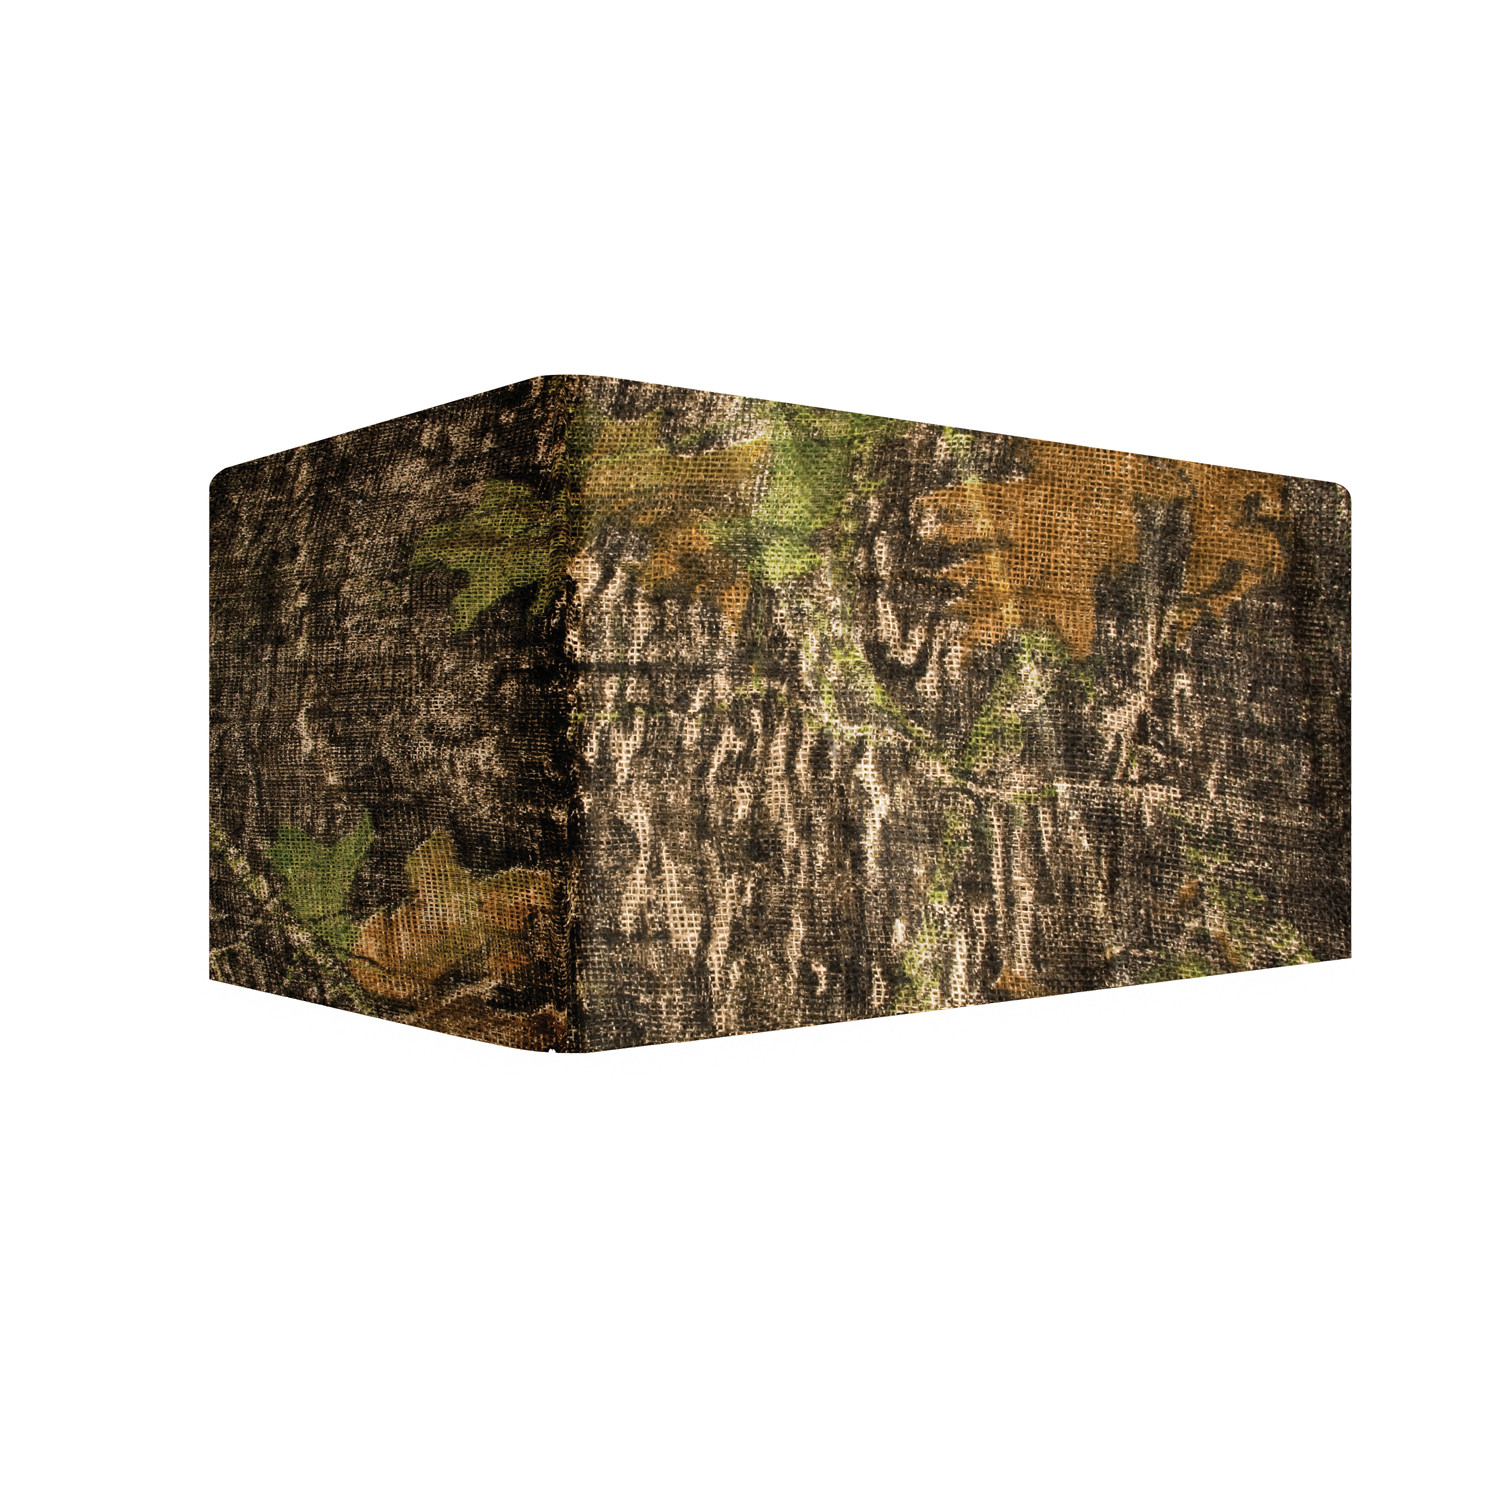 achat vente filet camouflage toile de jute mossy oak break up pas cher 491. Black Bedroom Furniture Sets. Home Design Ideas